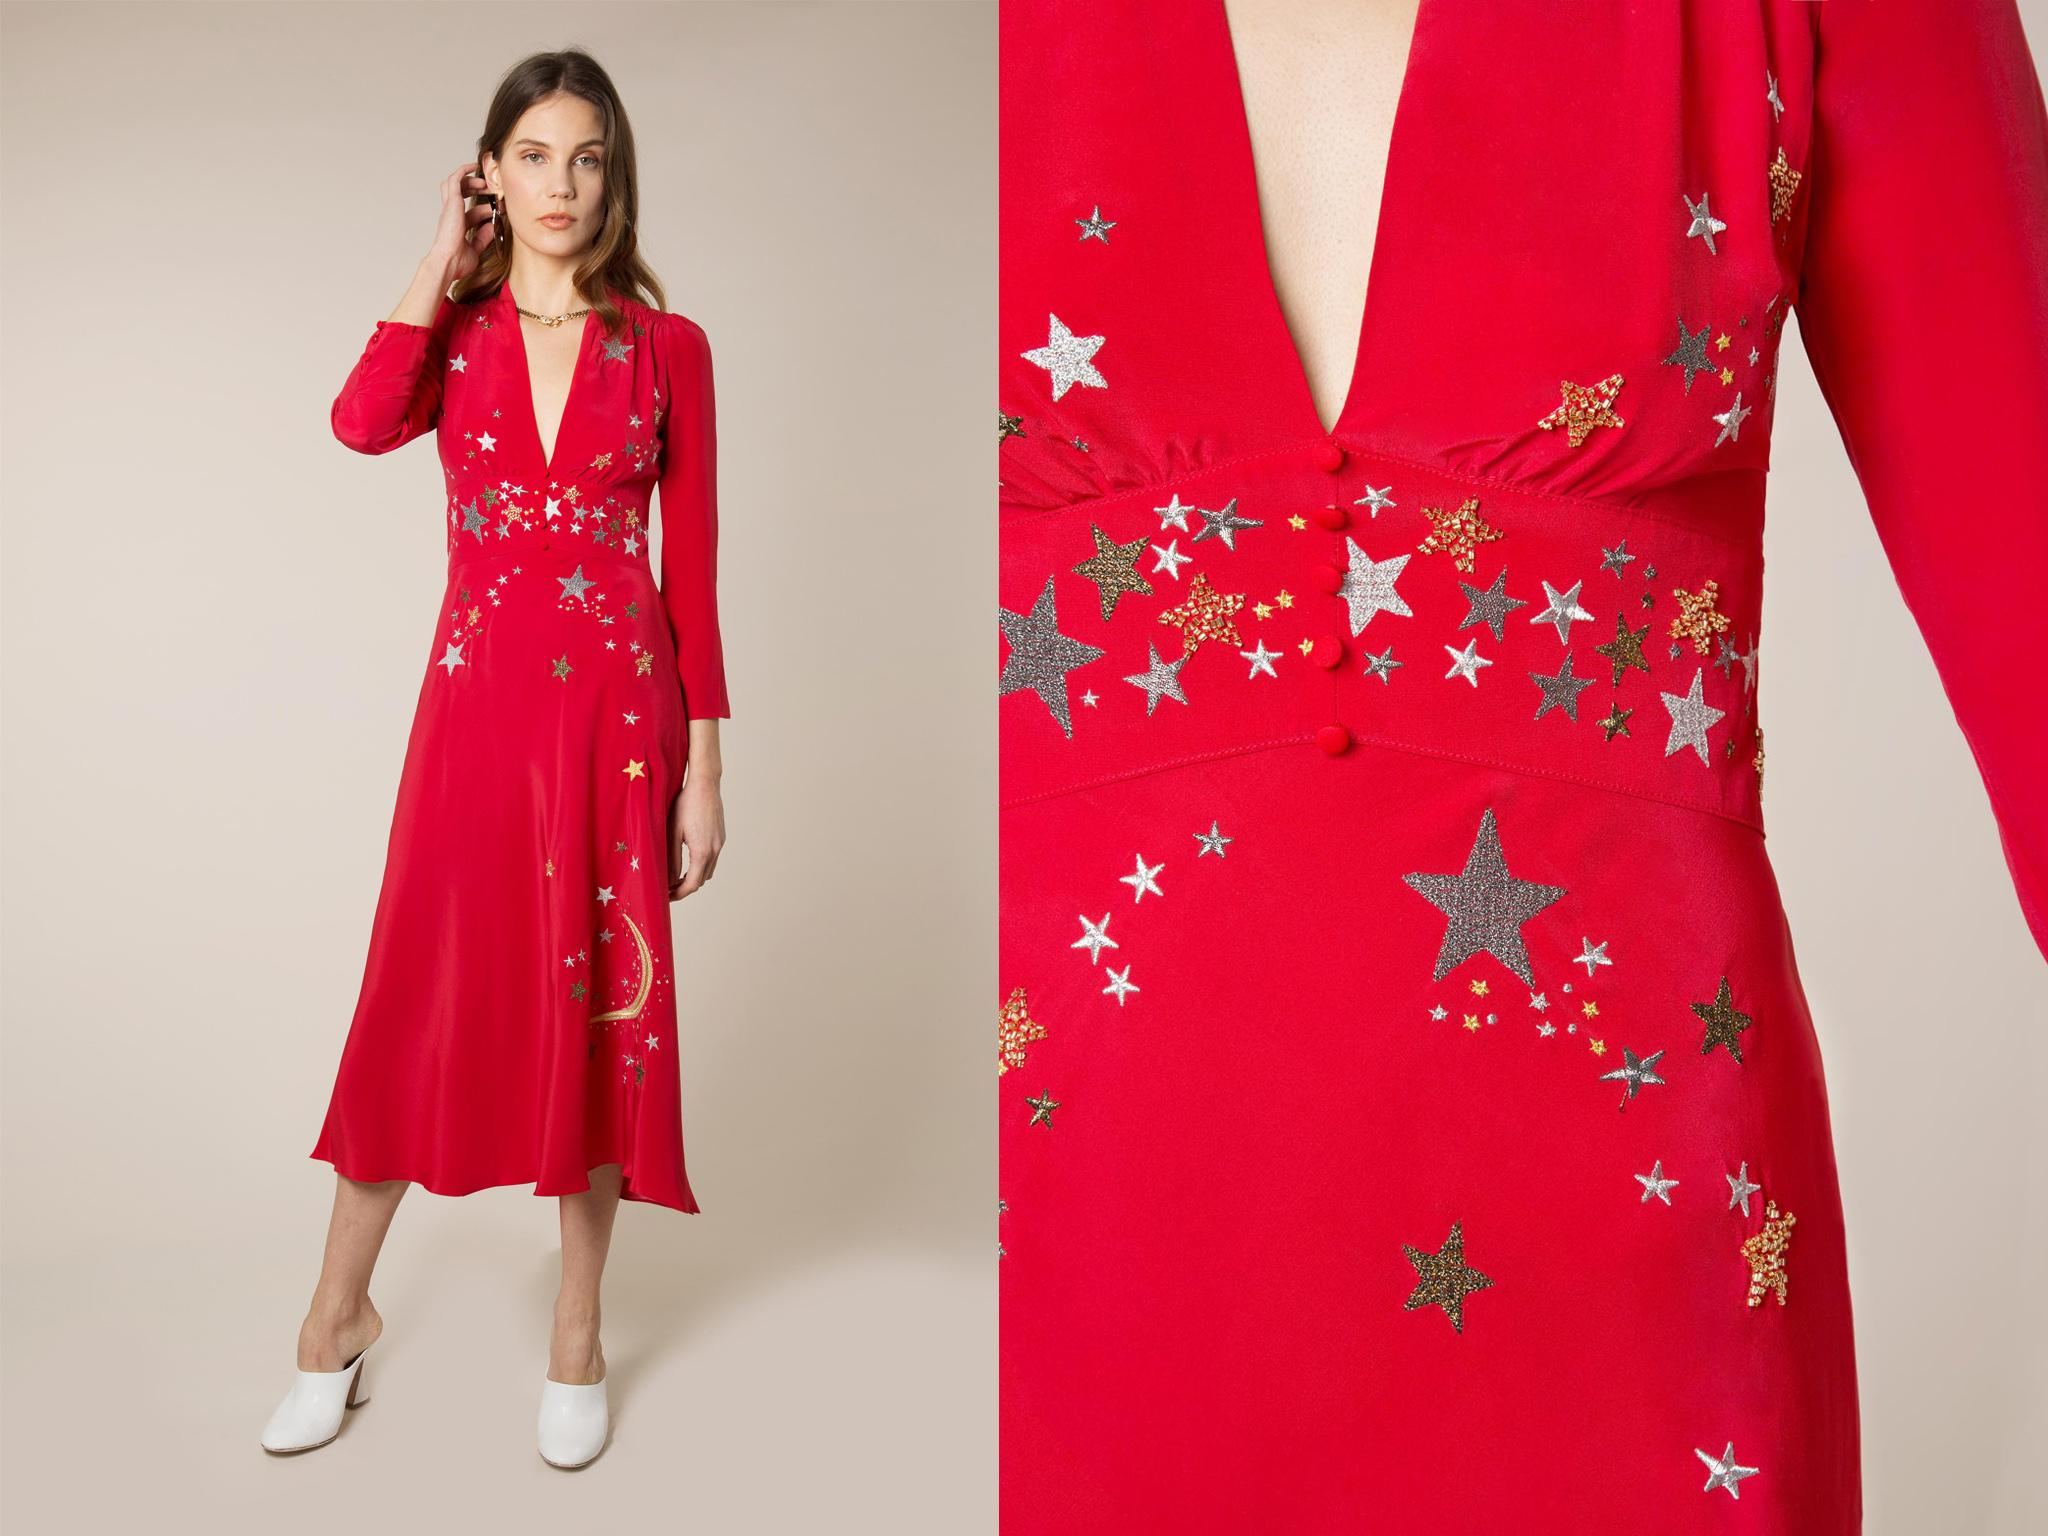 0d5233dba801 With its celestial placement print and festive red shade, this long sleeve  number is crying out for a winter wedding. The sassy v neck is low enough  to feel ...